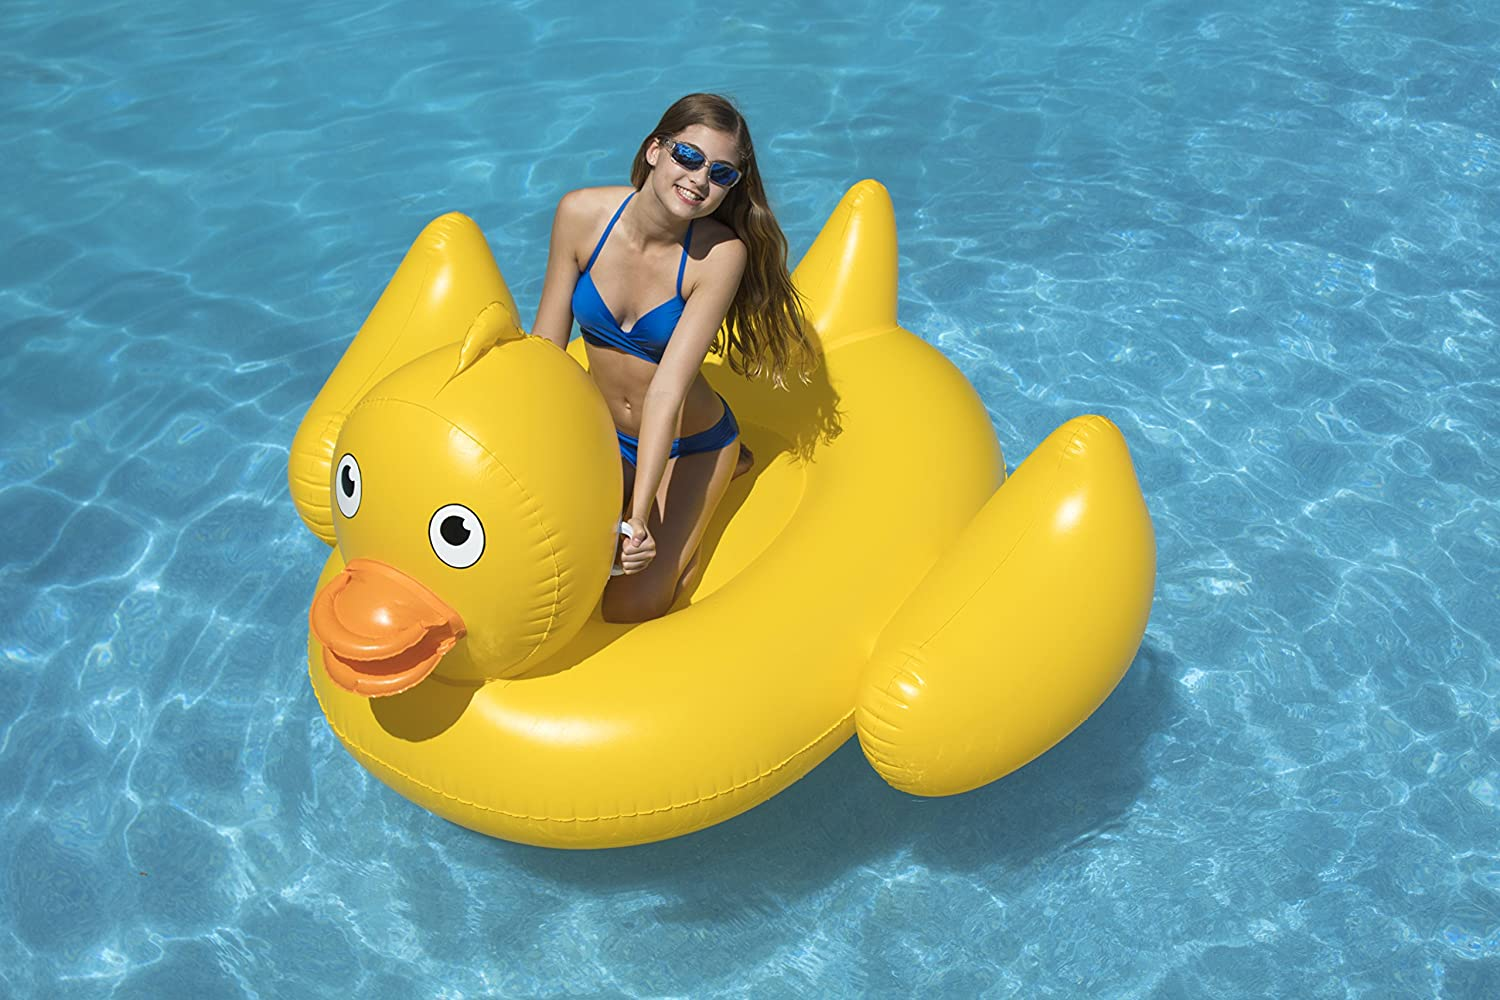 Swimline Giant Lucky Ducky Ride-On Pool Inflatable Ride-On Yellow 90620